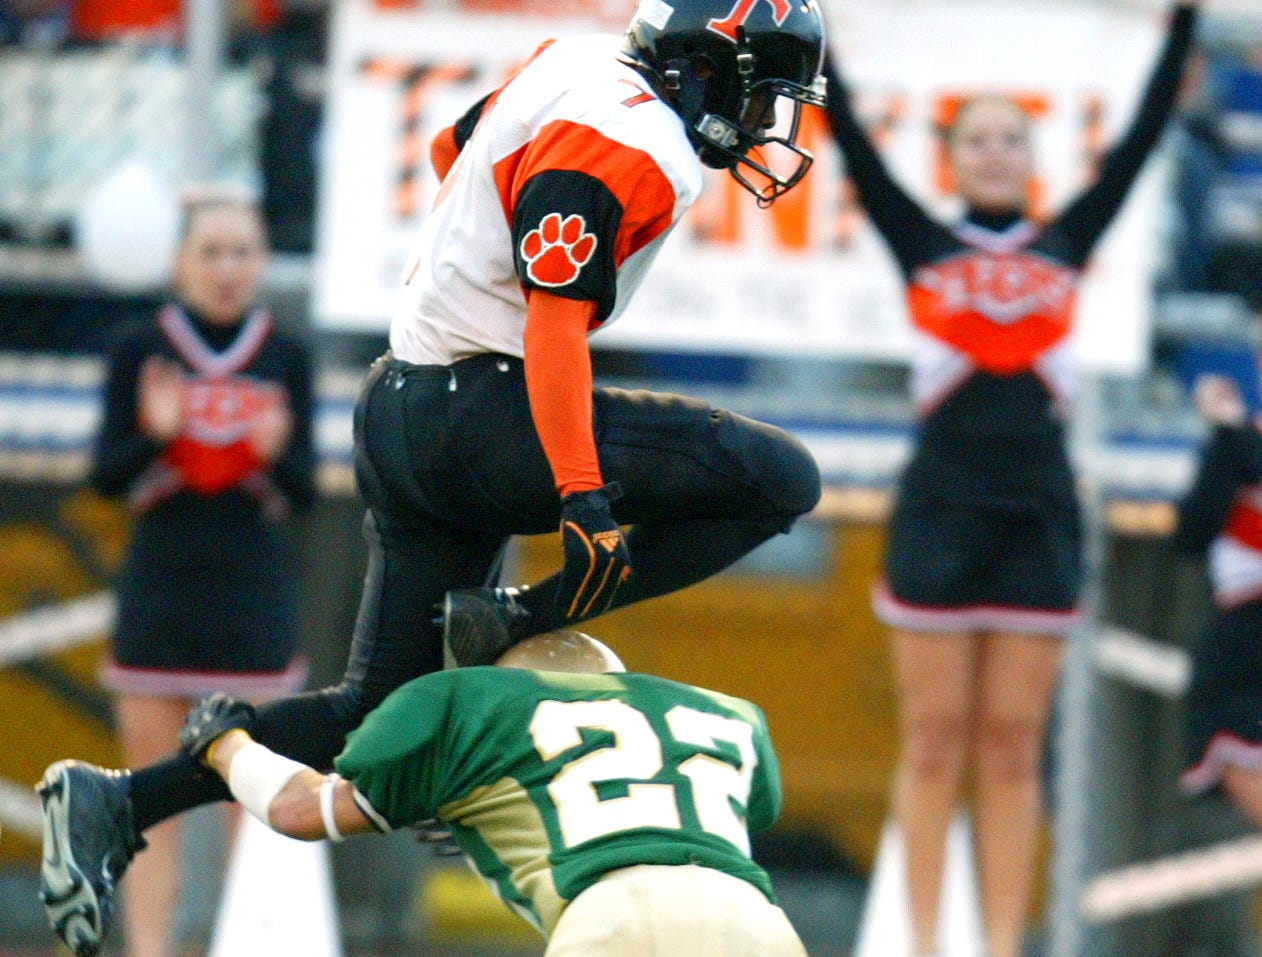 Union-Endicott's Jermaine Thomas jumps over Vestal's Chris Dutkowsky during a kickoff return in the second quarter during Class 'AA' Section IV championships against Vestal at Binghamton Alumni Stadium in 2006.